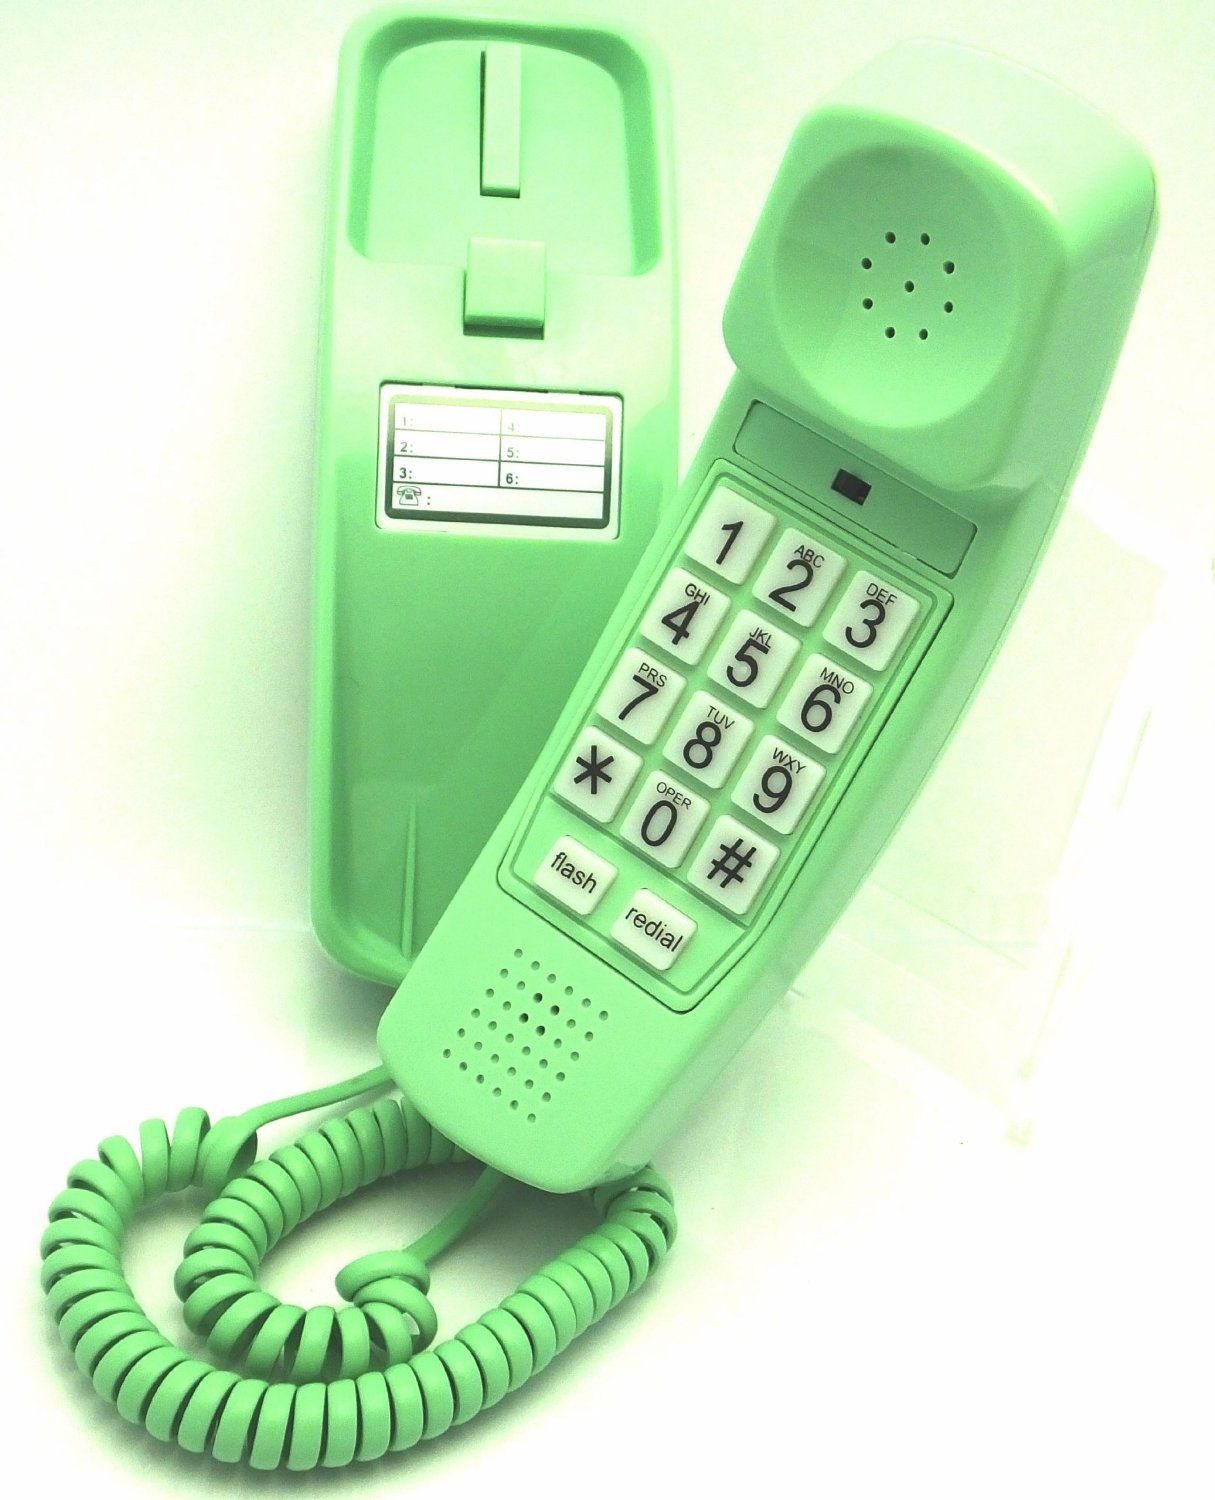 Trimline Phone Earth Day Green Sturdy Retro Novelty